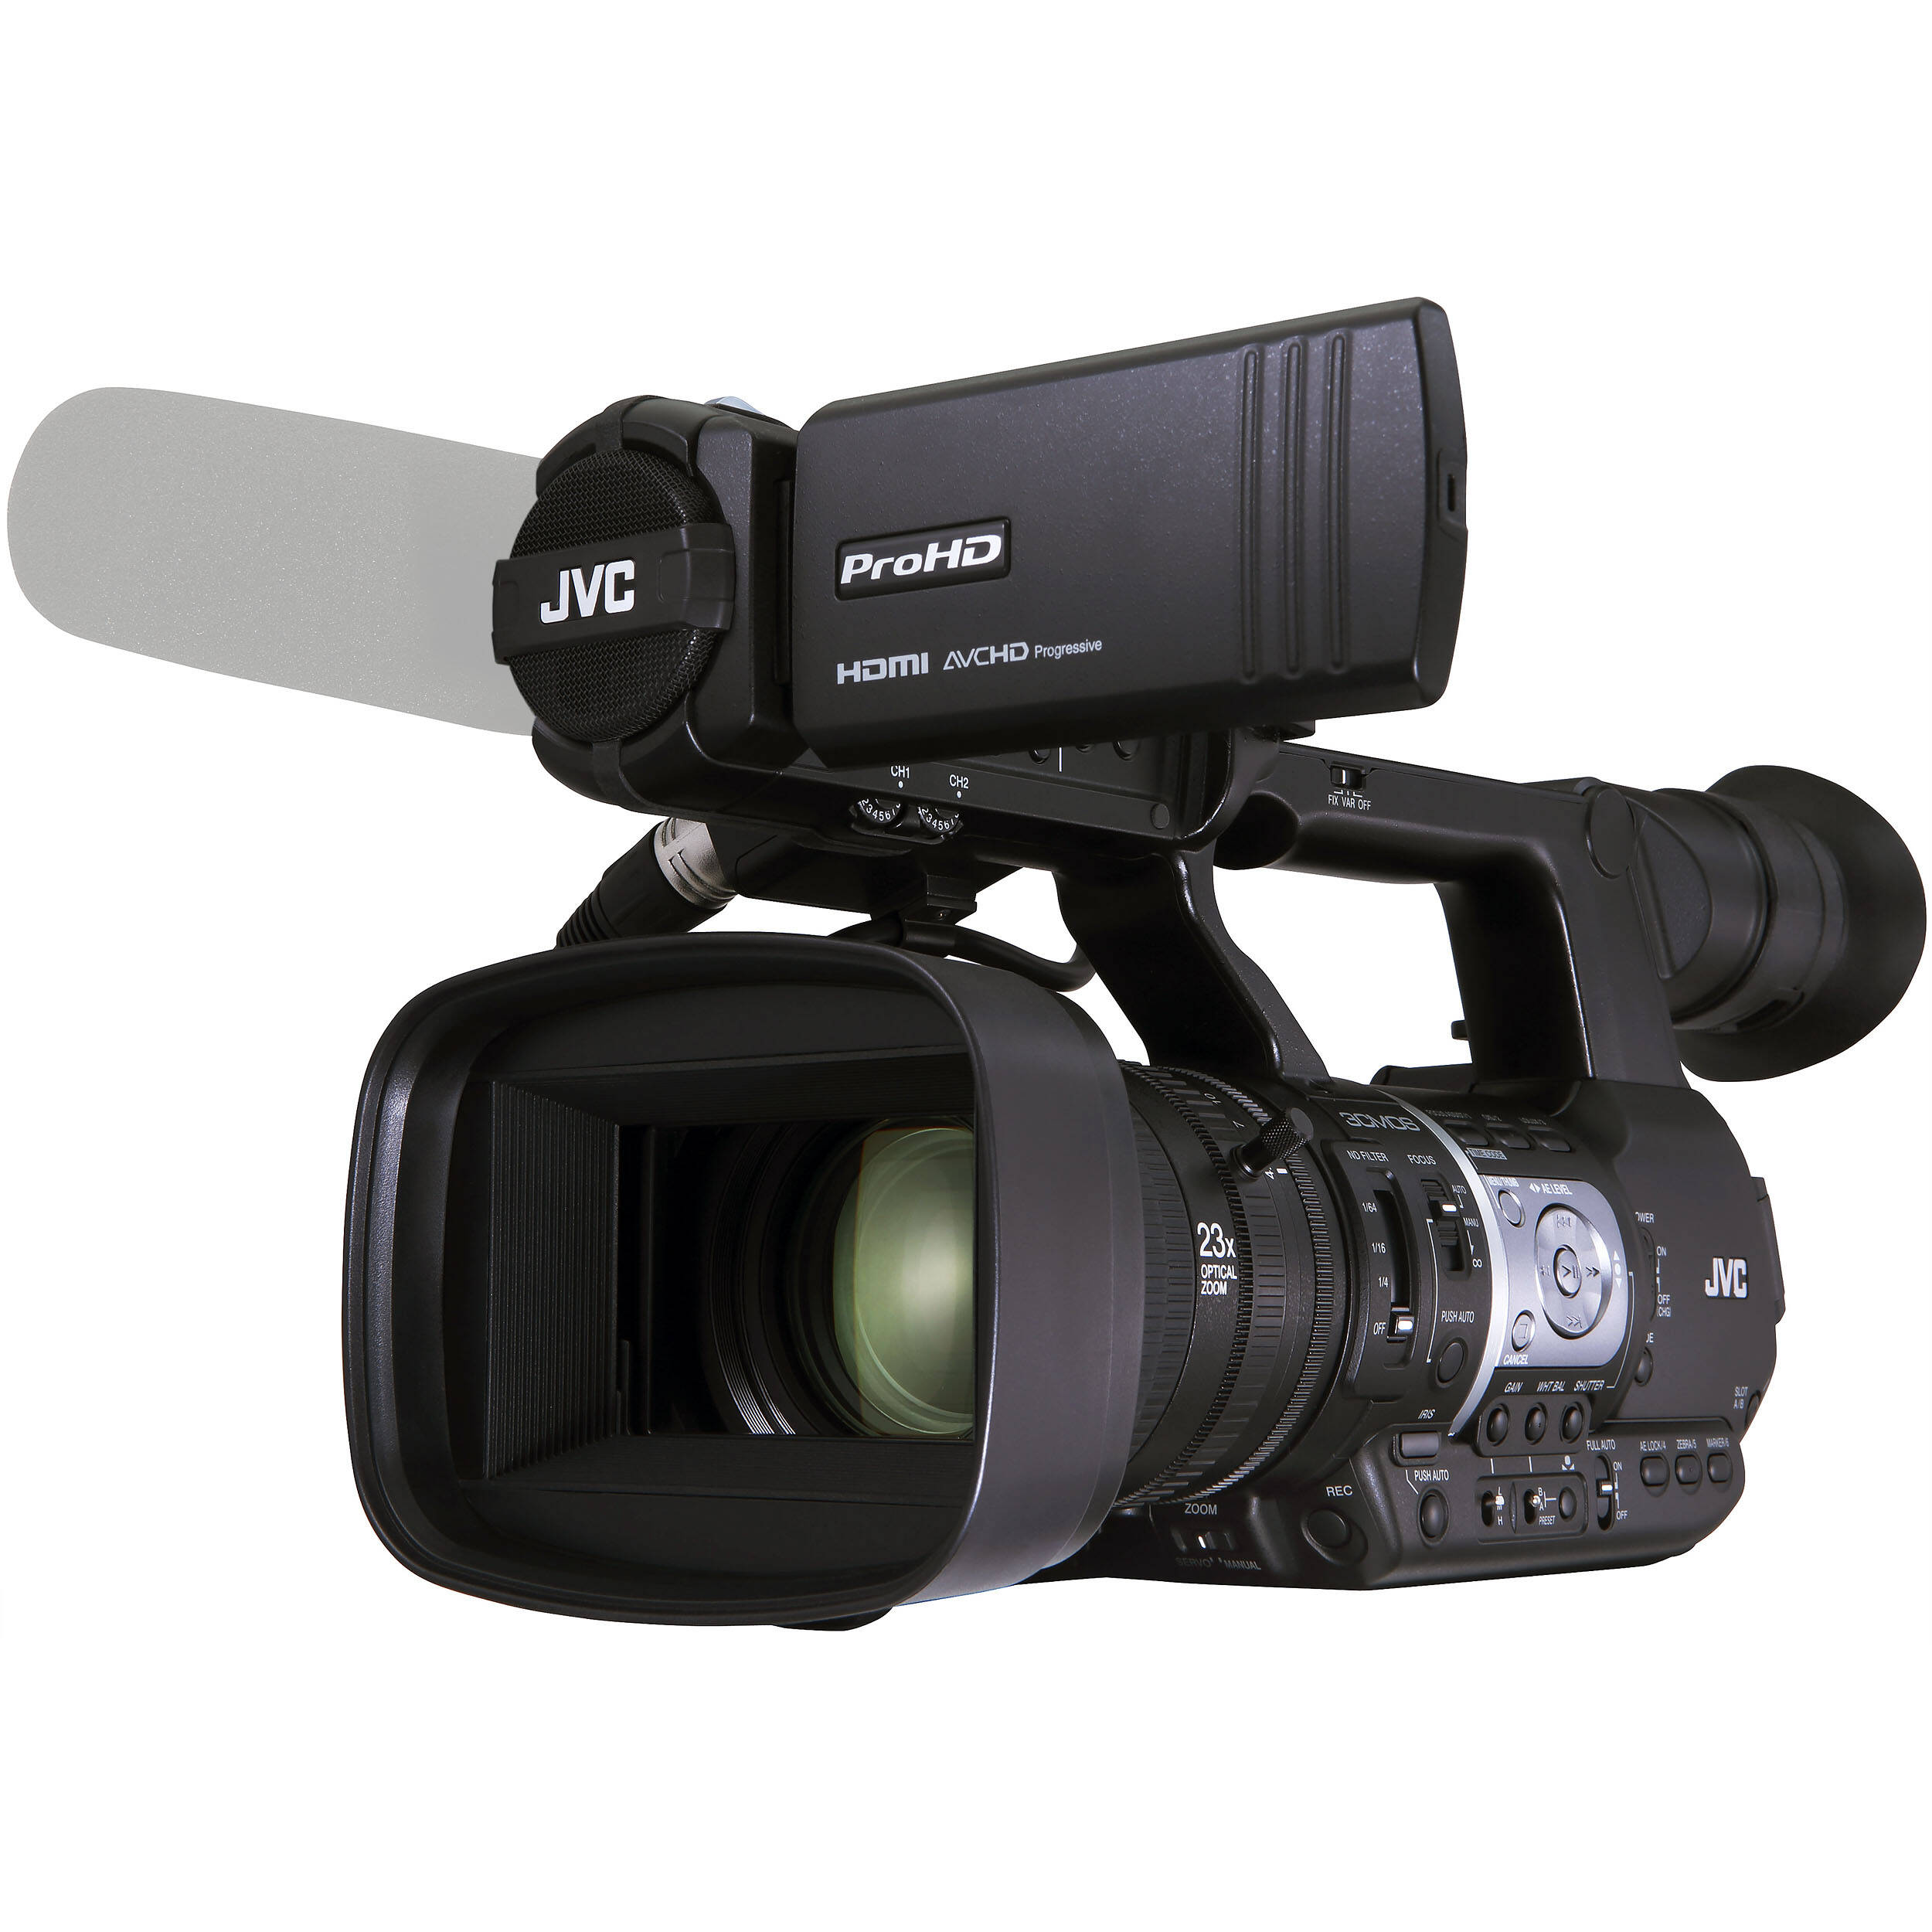 sony hd camcorder hdw 750 service repair manual